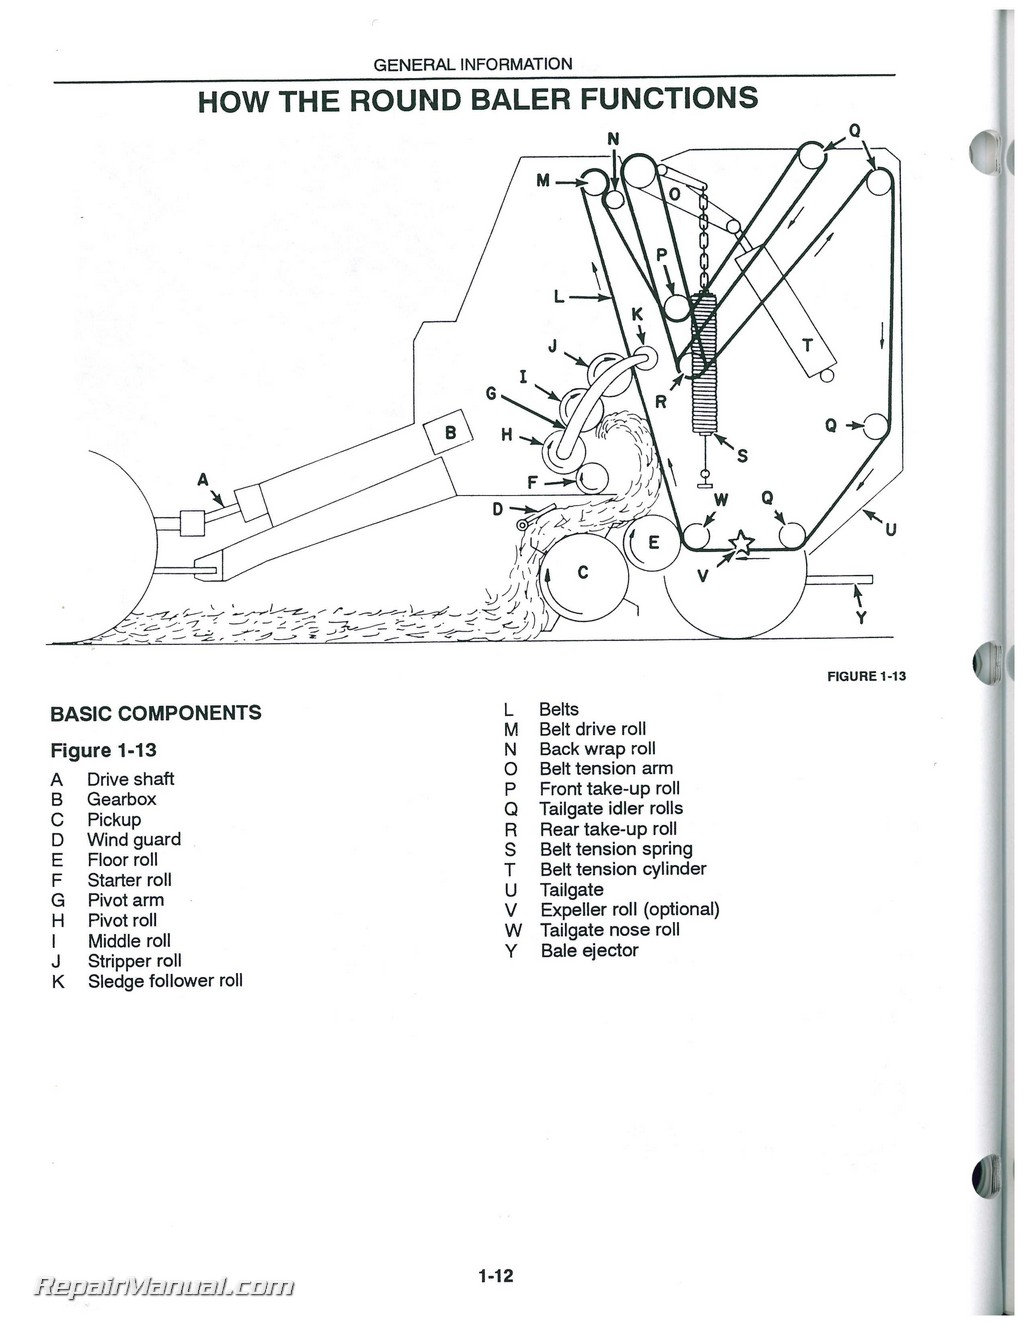 wiring diagram for 566 round baler